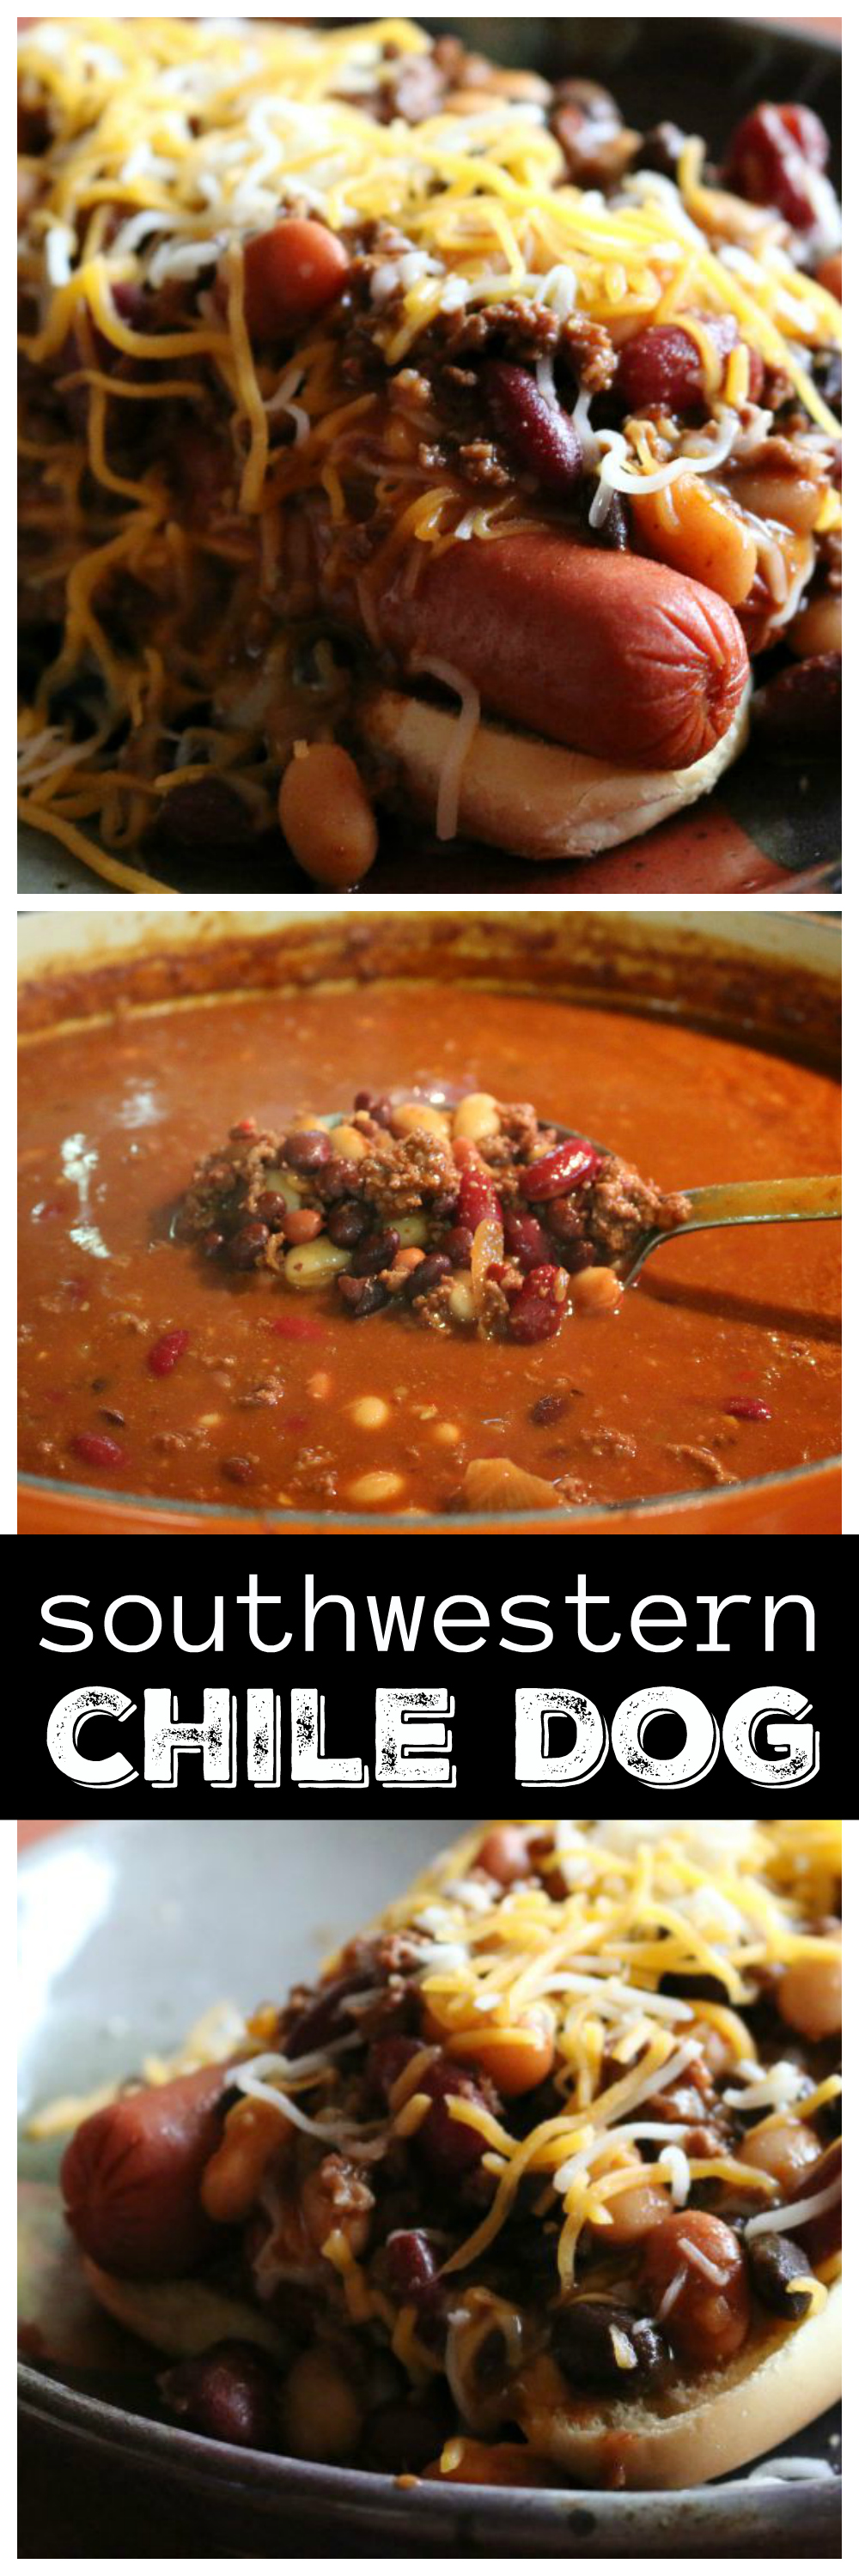 Southwestern Style Chili Dog CeceliasGoodStuff.com | Good Food for Good People